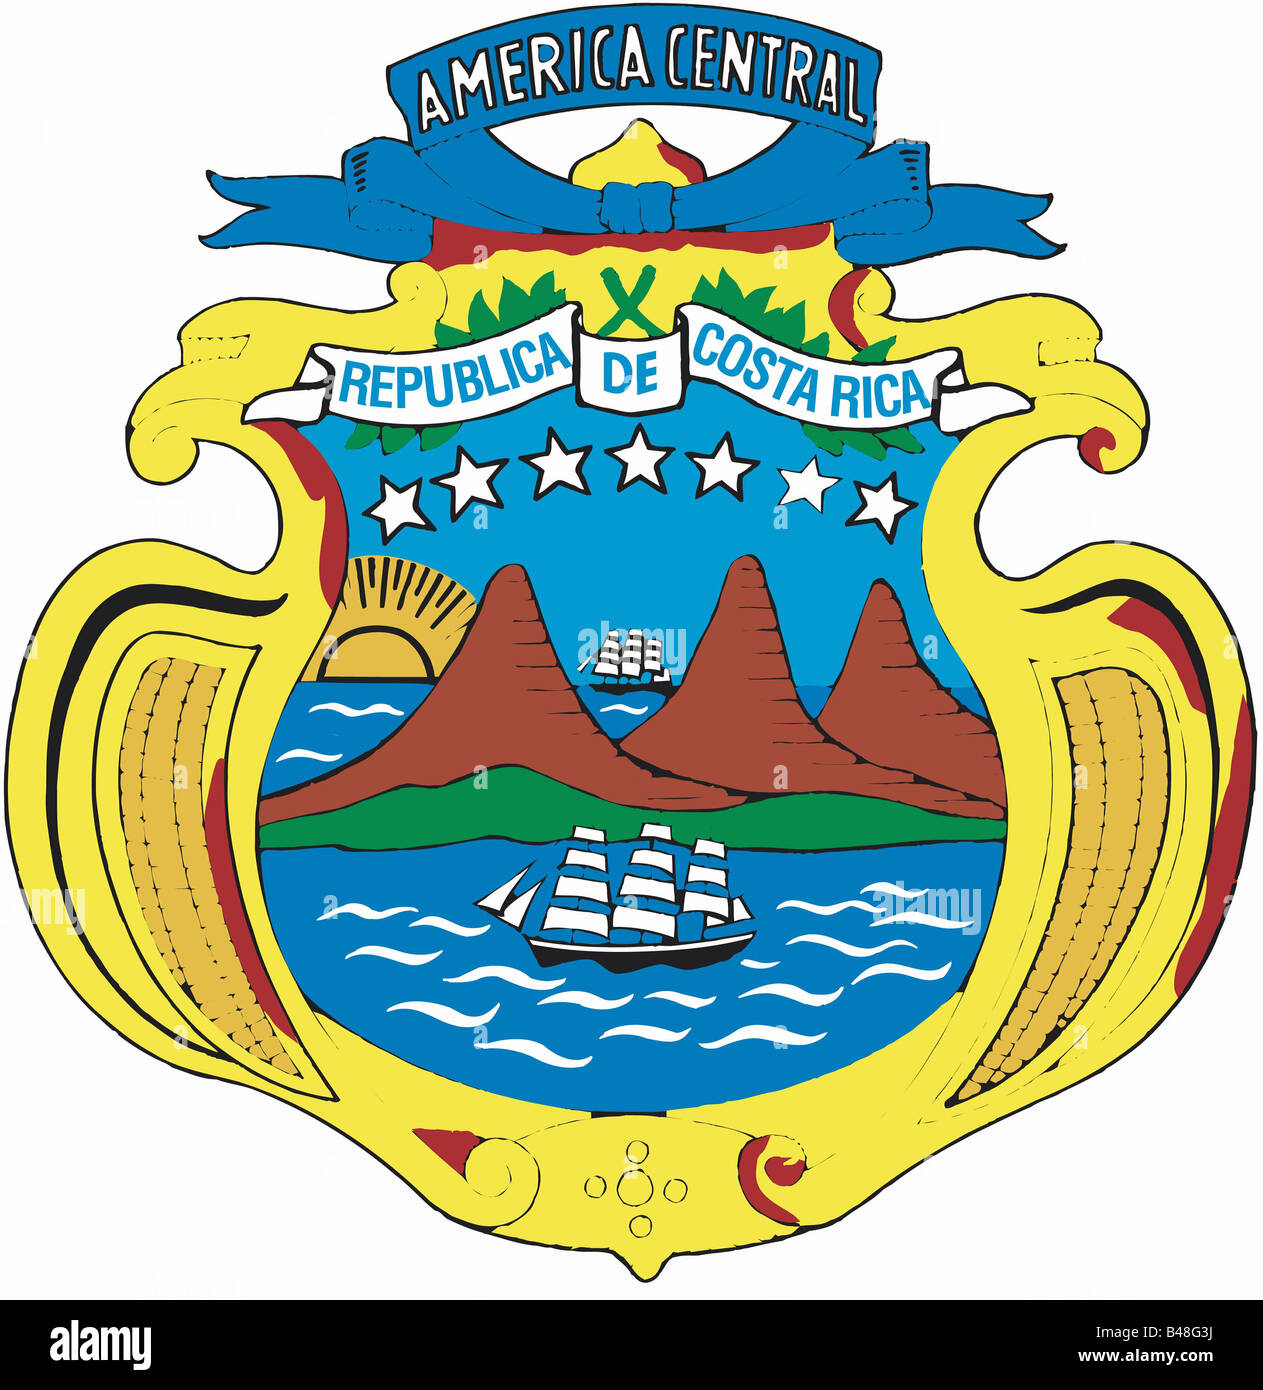 Heraldry Coat Of Arms Costa Rica National Coat Of Arms Launched